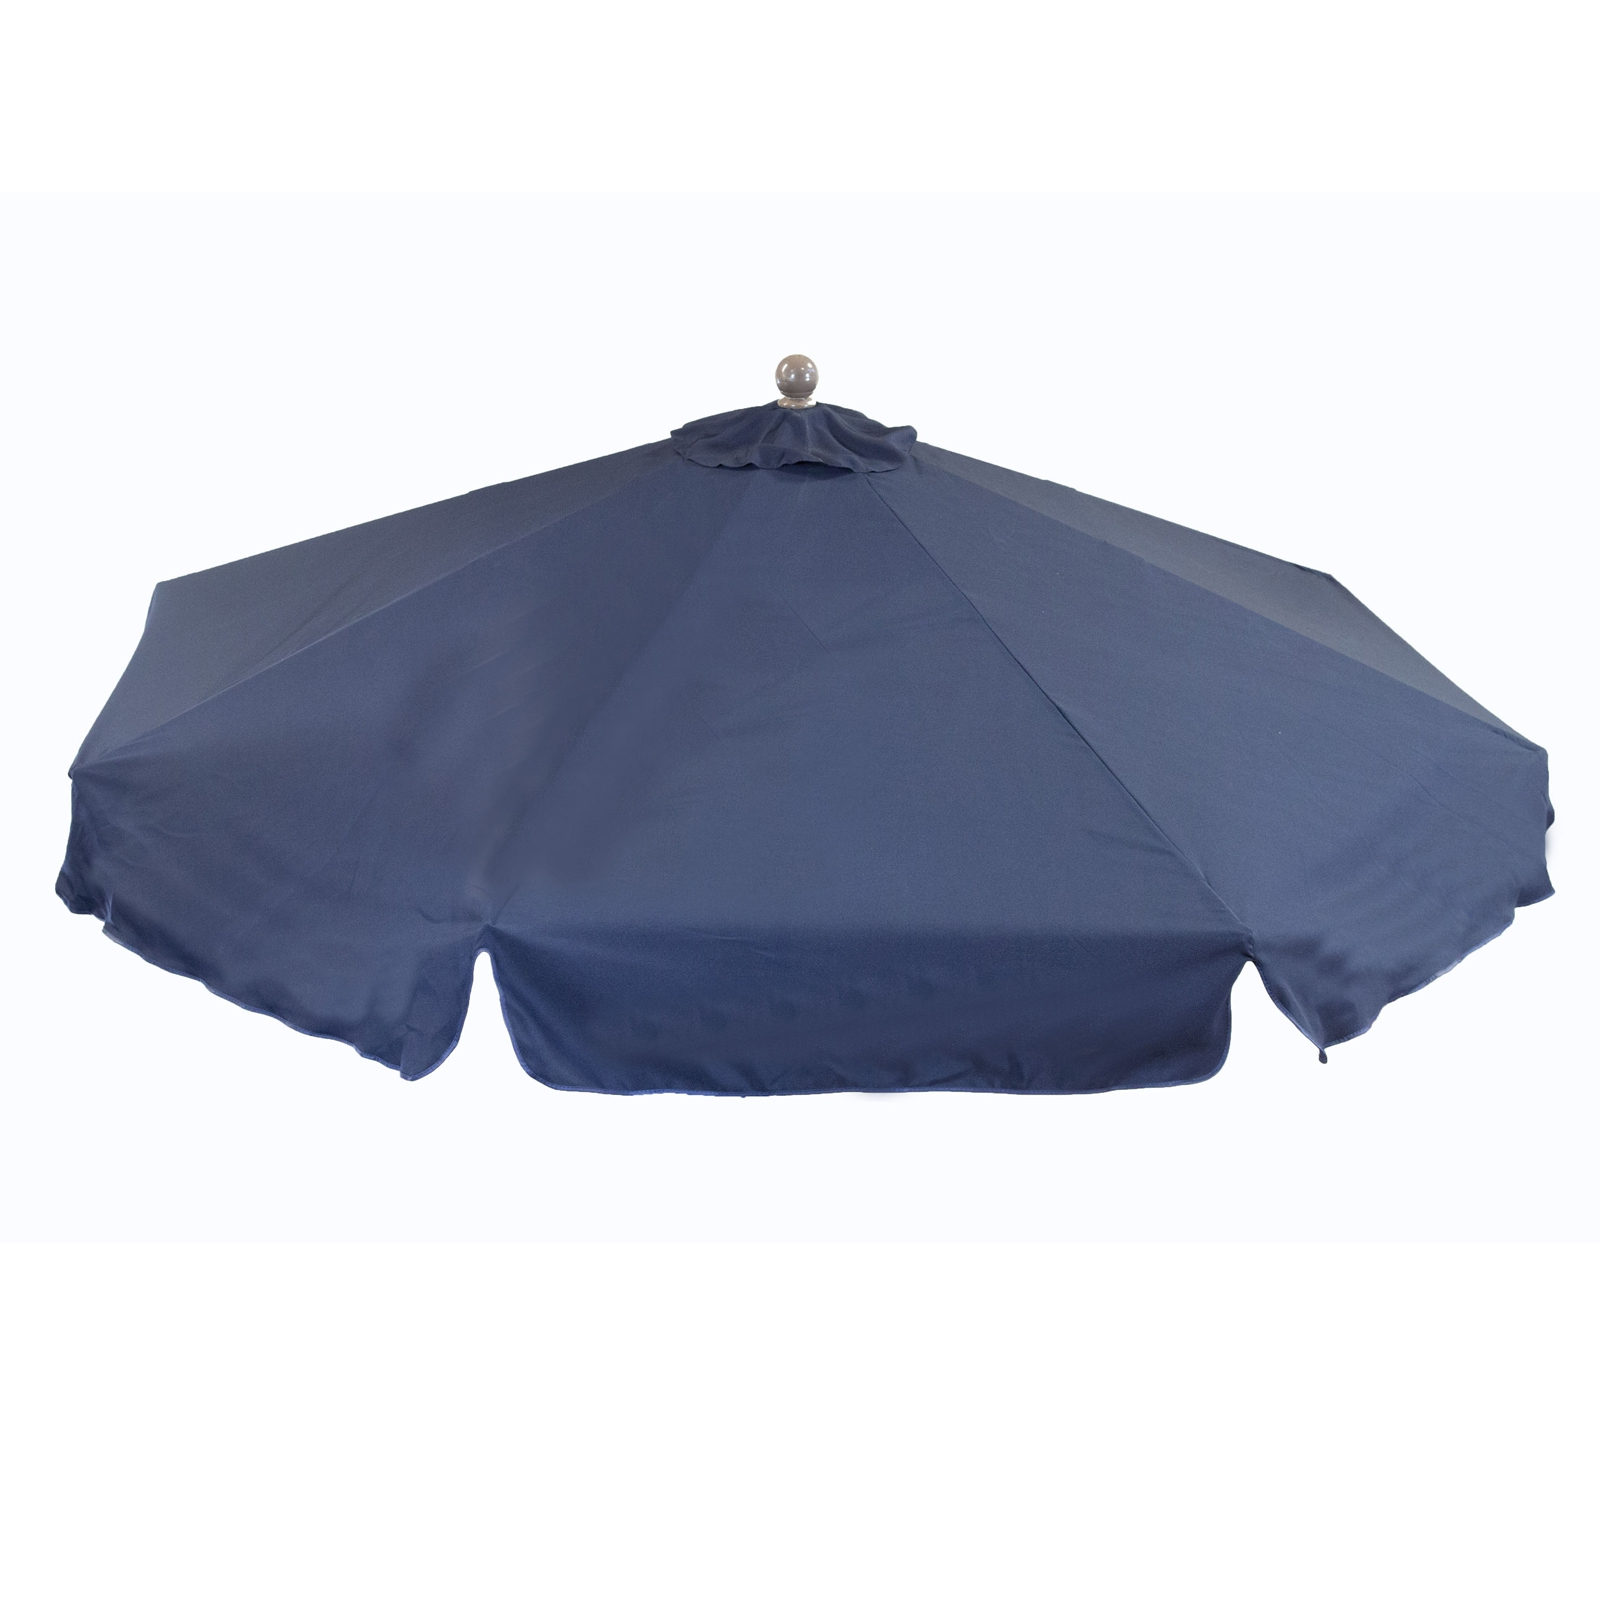 Newest 9ft Tilt Italian Market Umbrella Home Patio Outdoor Garden Canopy Shelter – Navy Inside Italian Market Umbrellas (View 10 of 20)